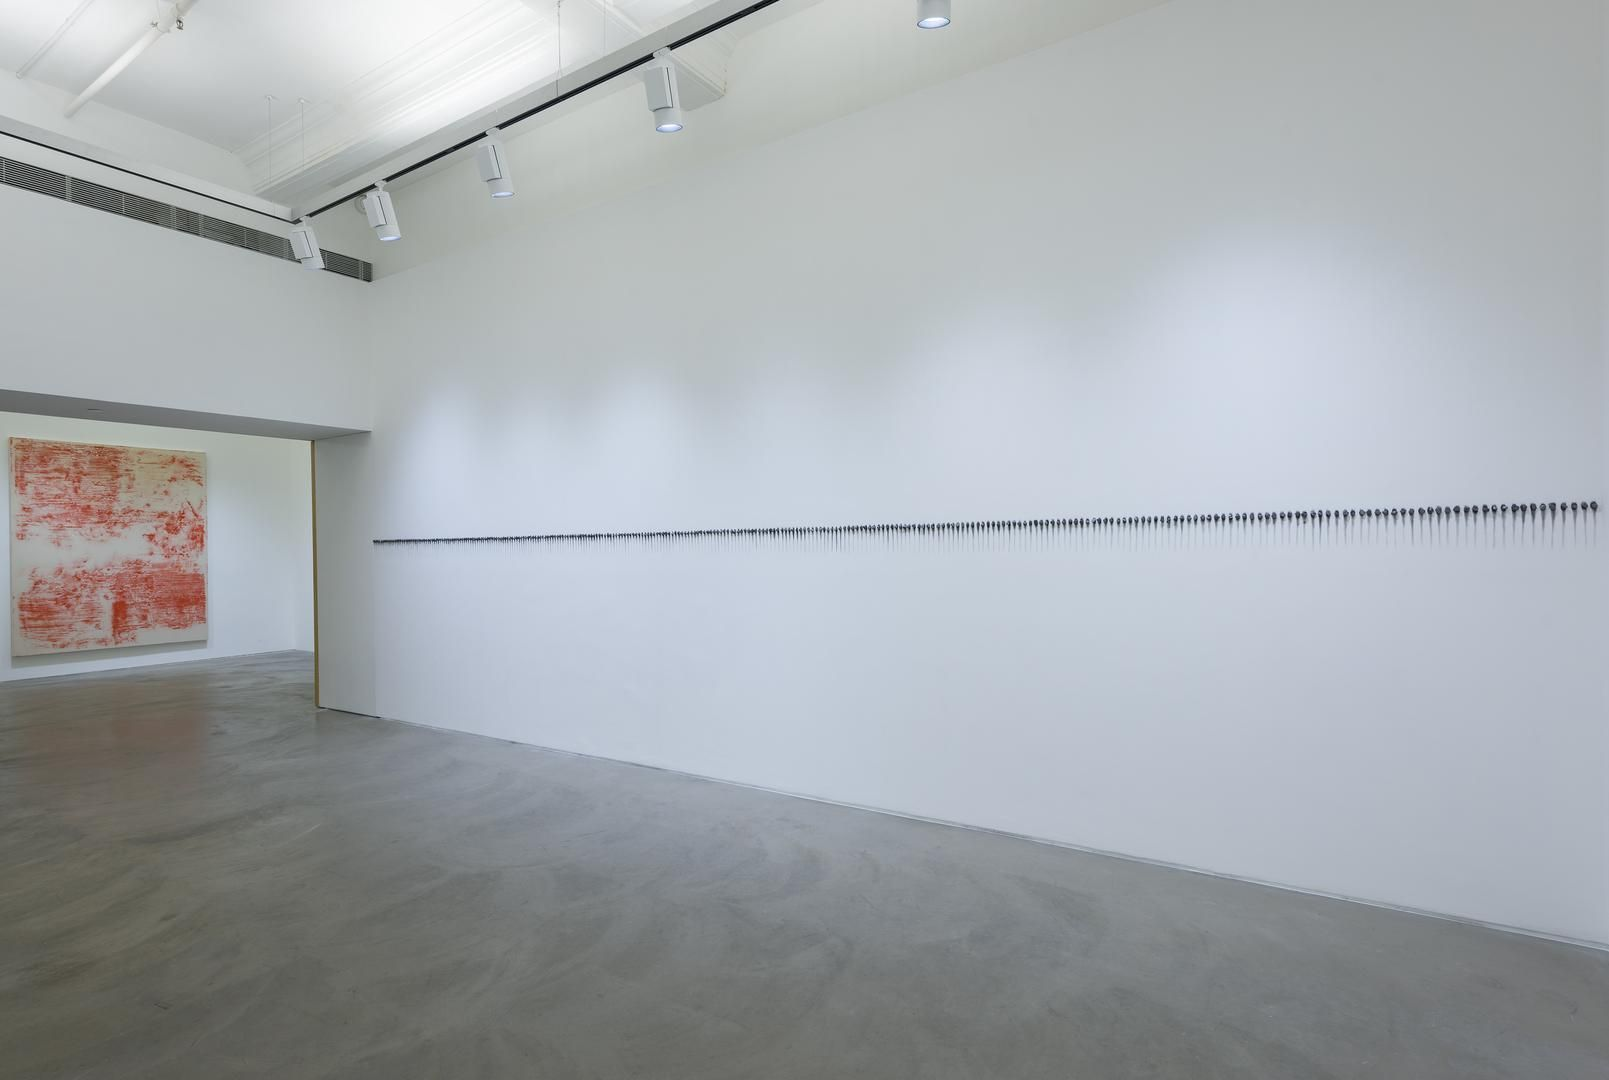 Horizon Installation view 4